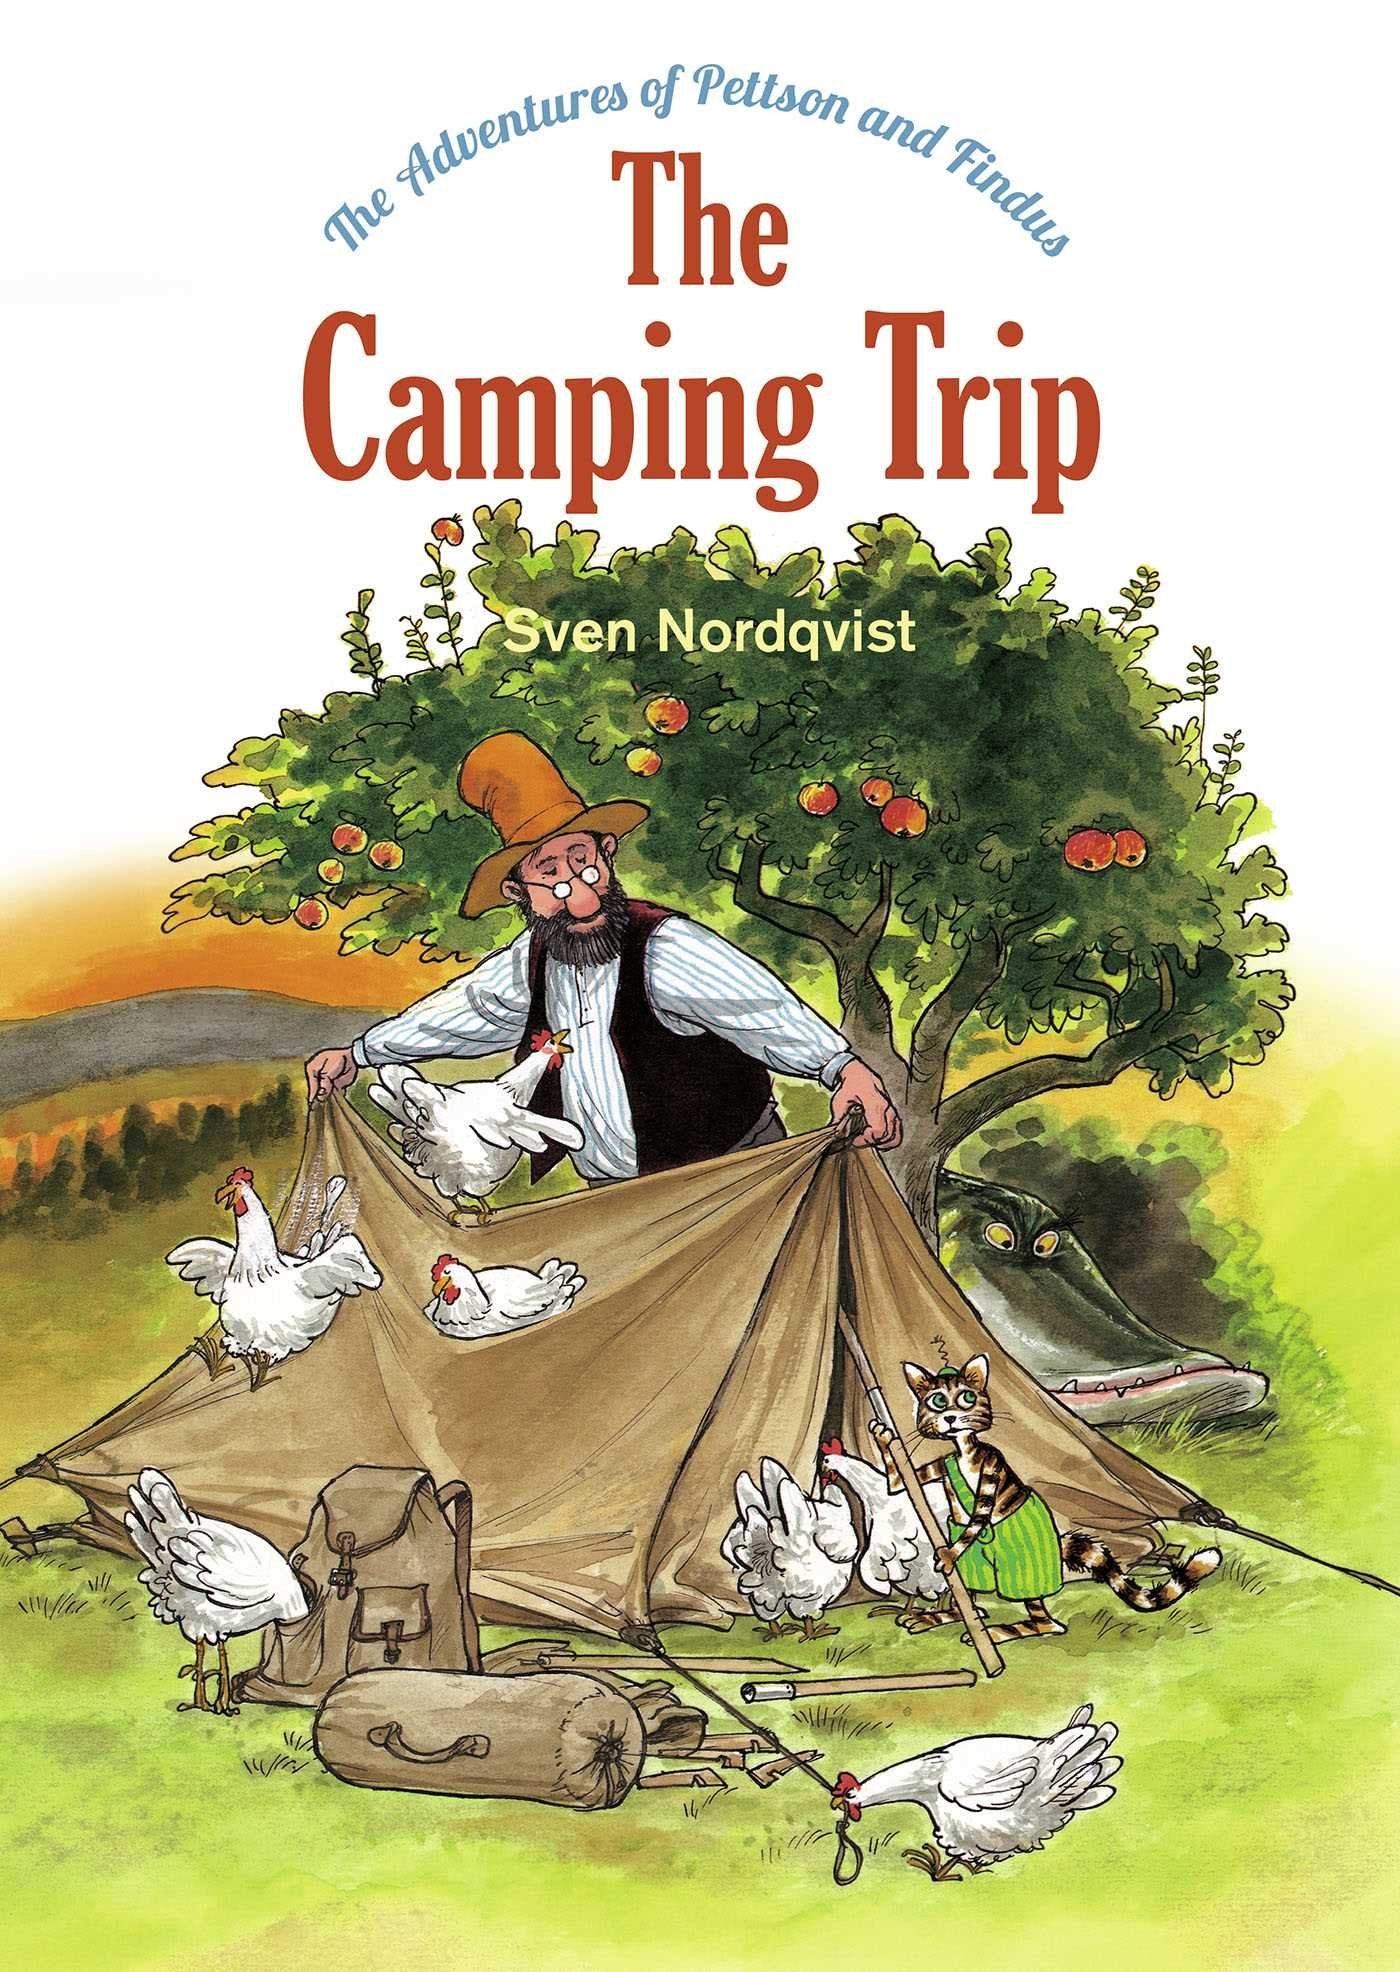 The Camping Trip: The Adventures of Pettson & Findus (The Adventures of Pettson and Findus) ebook